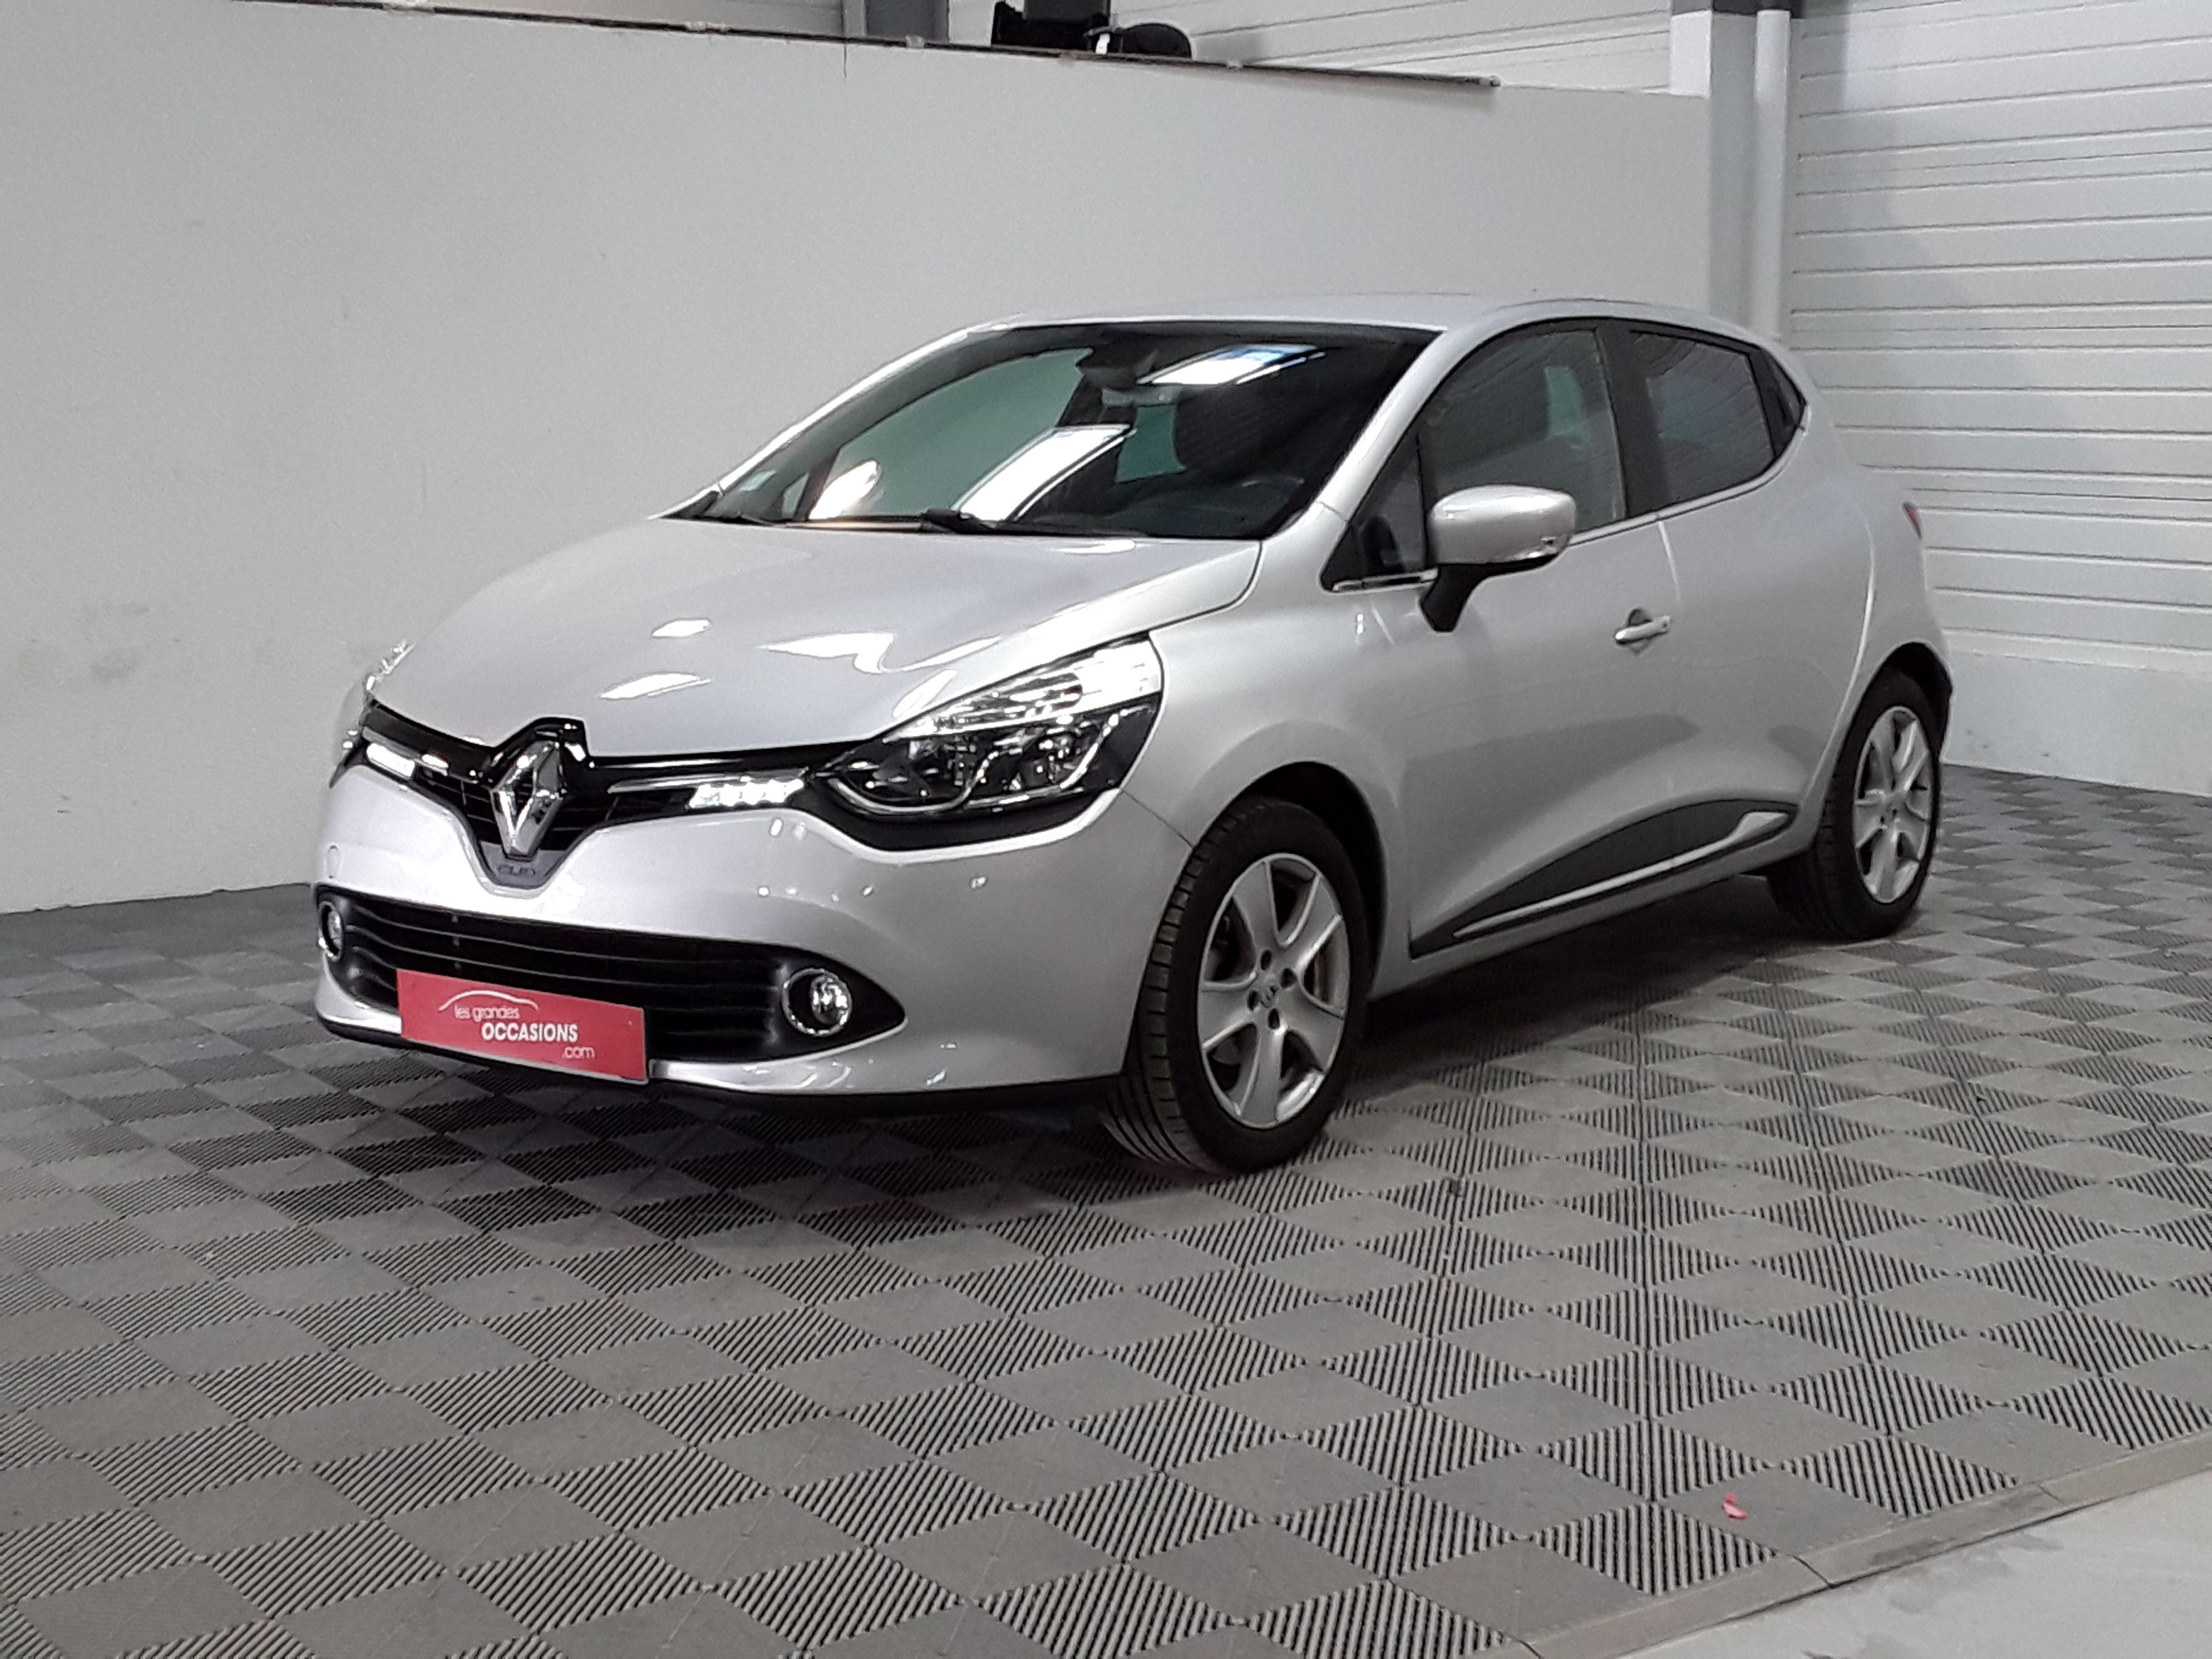 RENAULT CLIO IV 1.5 DCI 90CH ENERGY INTENS 5P d'occasion